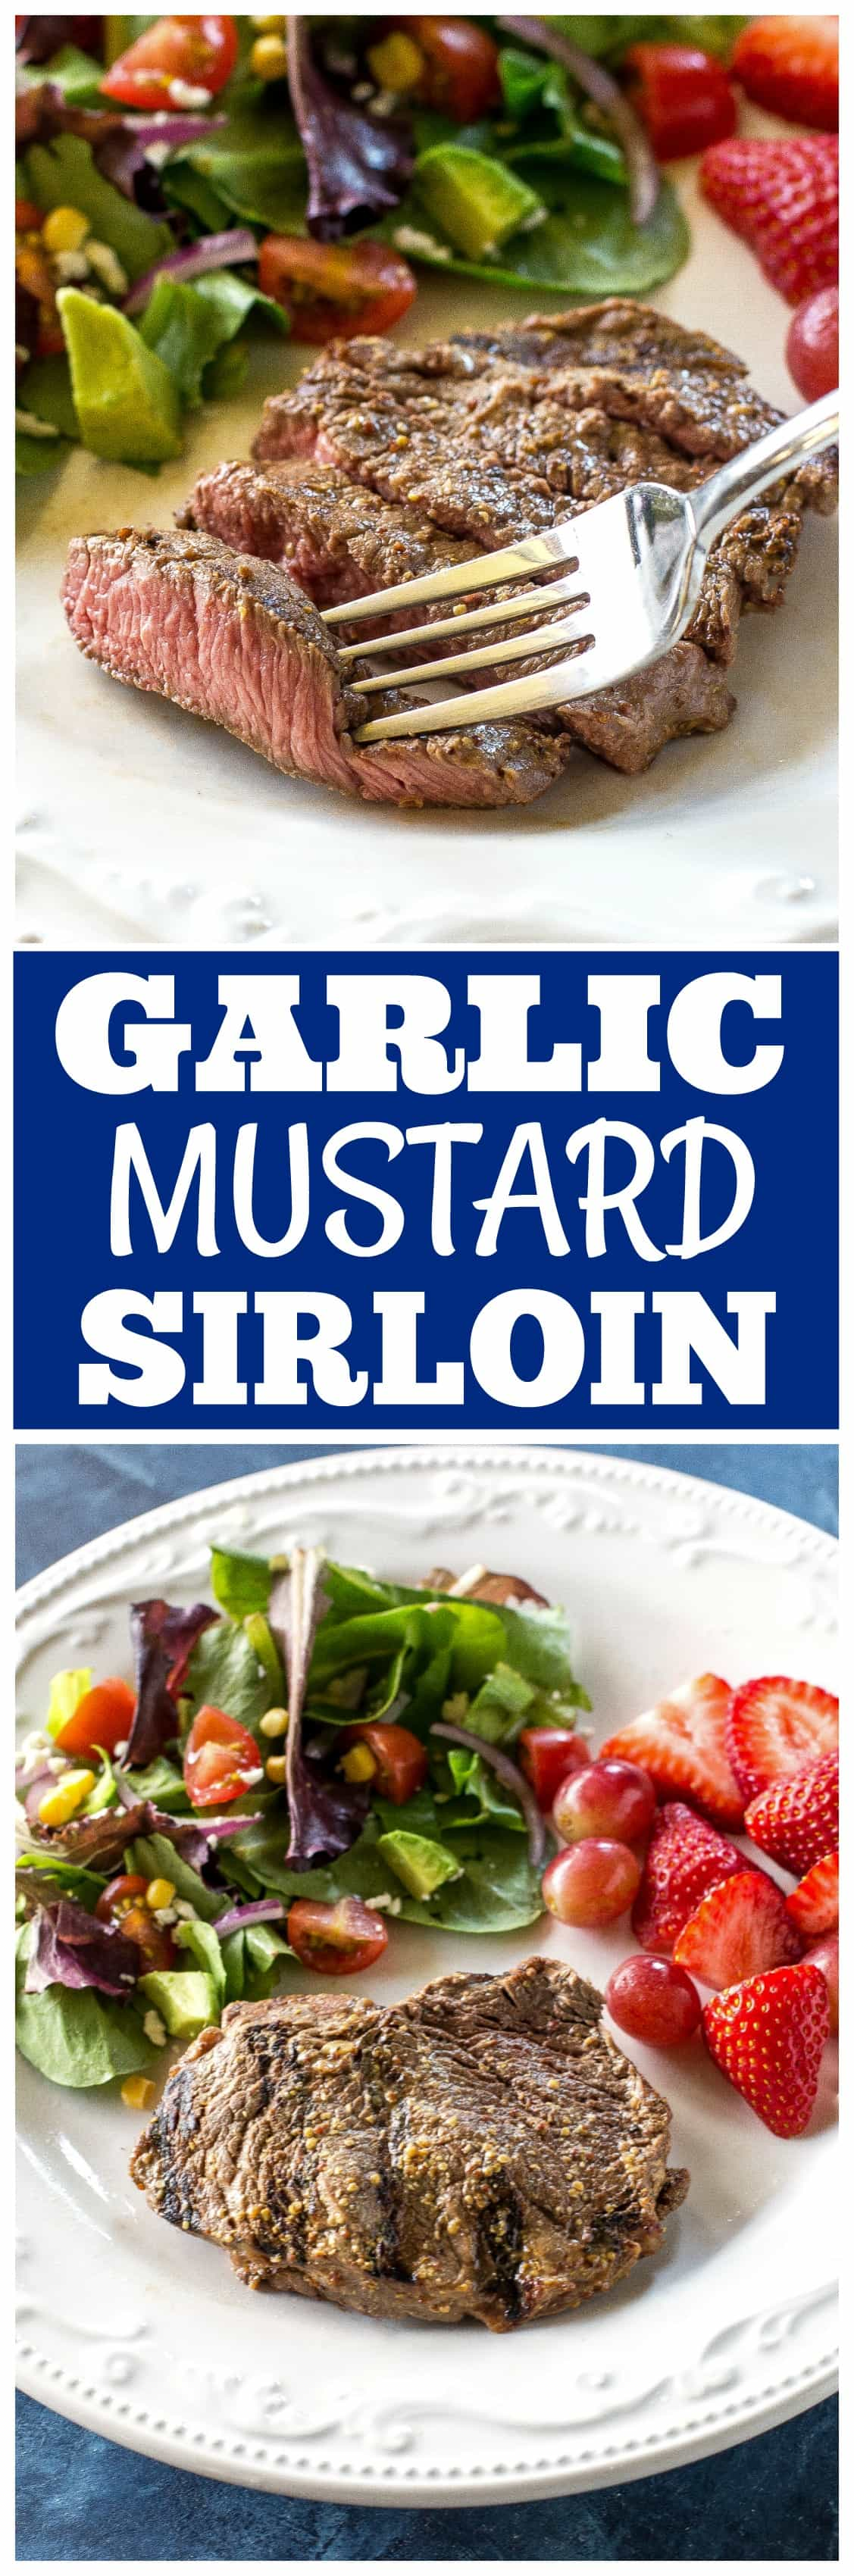 Get your grill on with this lean Garlic Mustard Sirloin. It's a easy dinner ready in under 30 minutes that is packed with flavor and protein. #KingoftheGrill #ad @beeffordinner